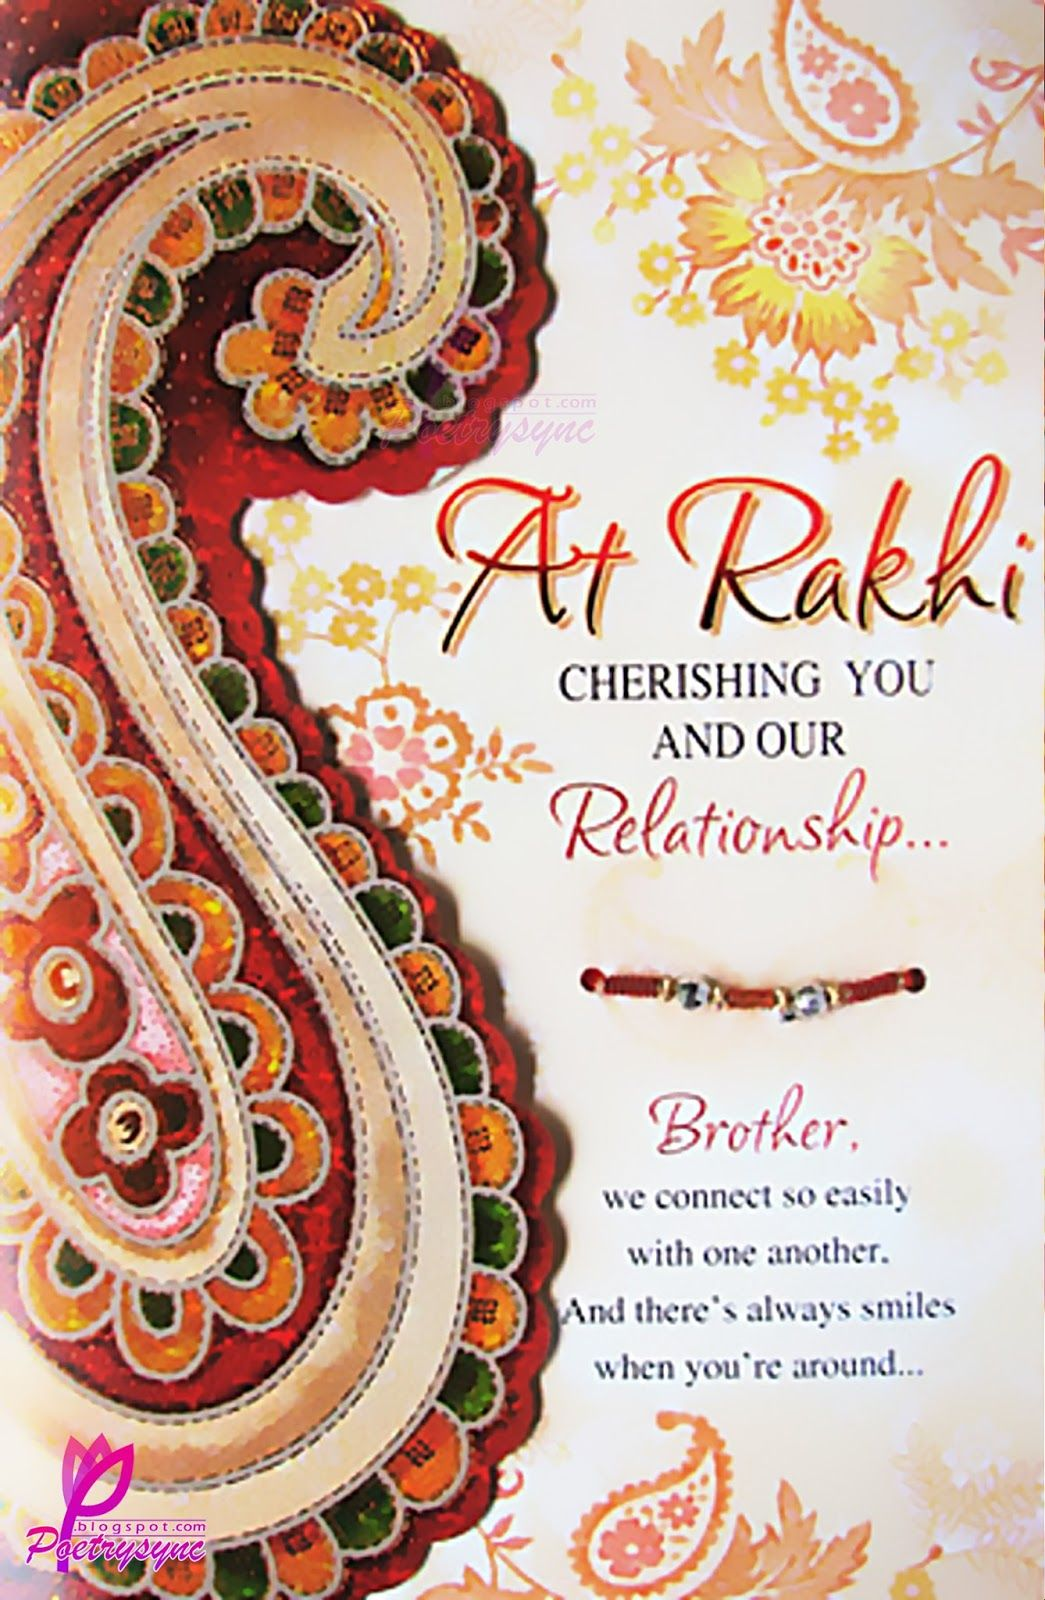 Brother And Sister Quotes Siblings Bandhan Greetings Cards For